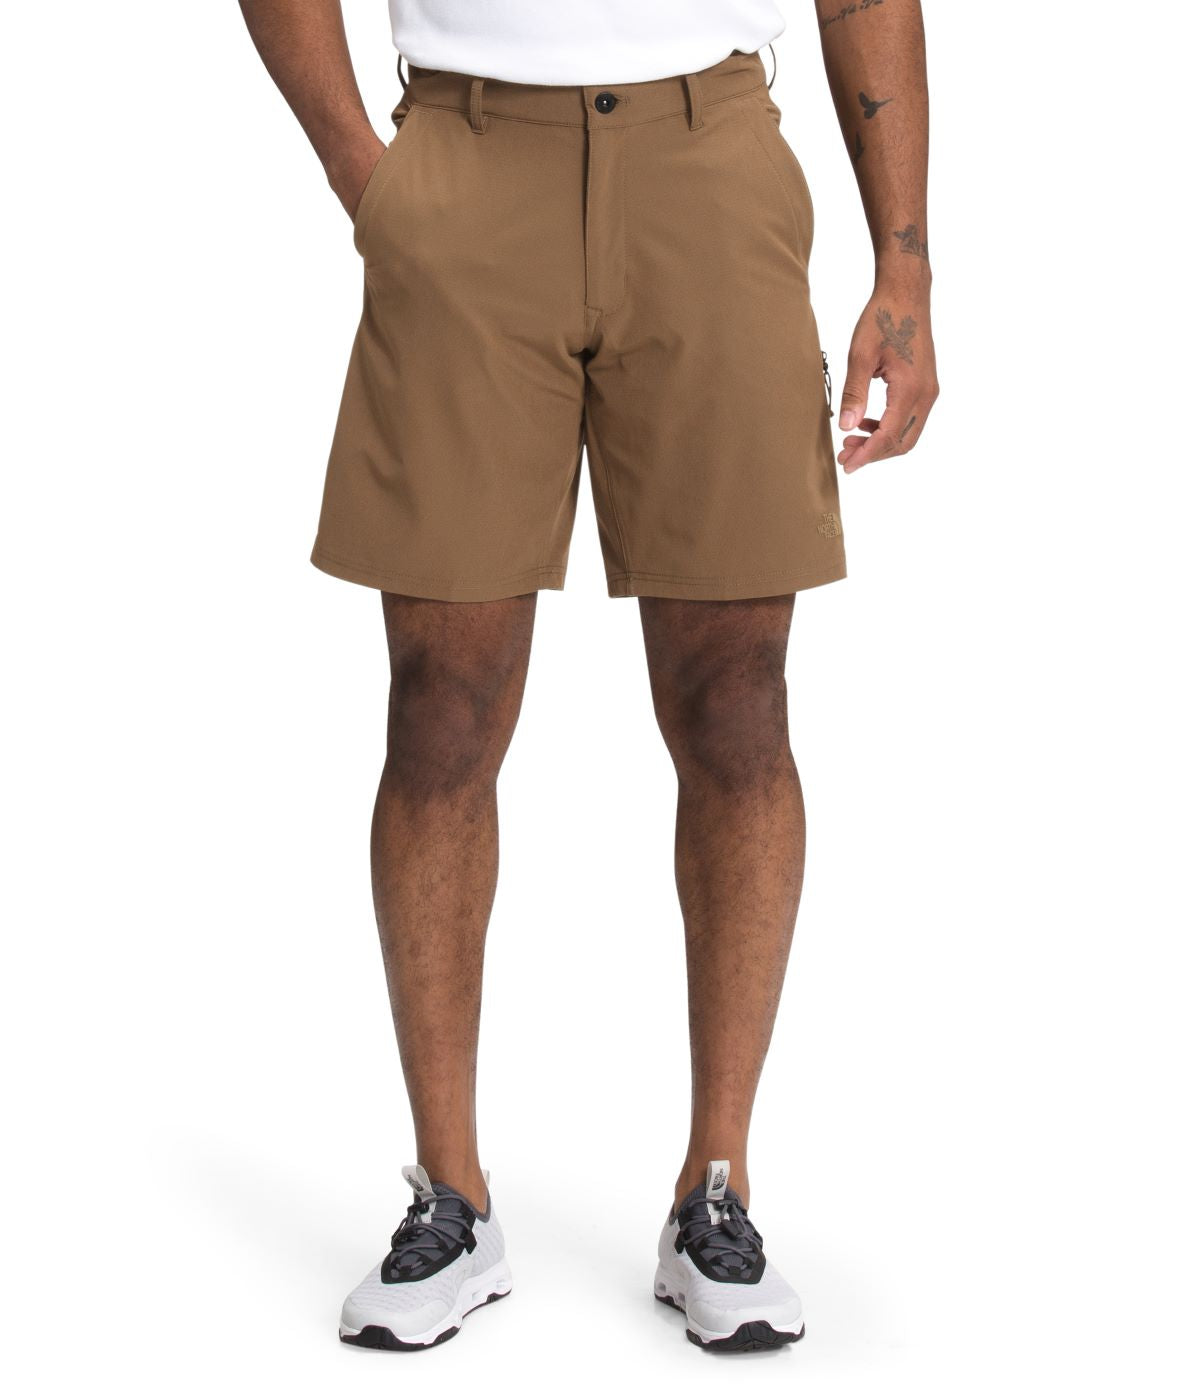 'The North Face' Men's Rolling Sun Packable Short - Utility Brown